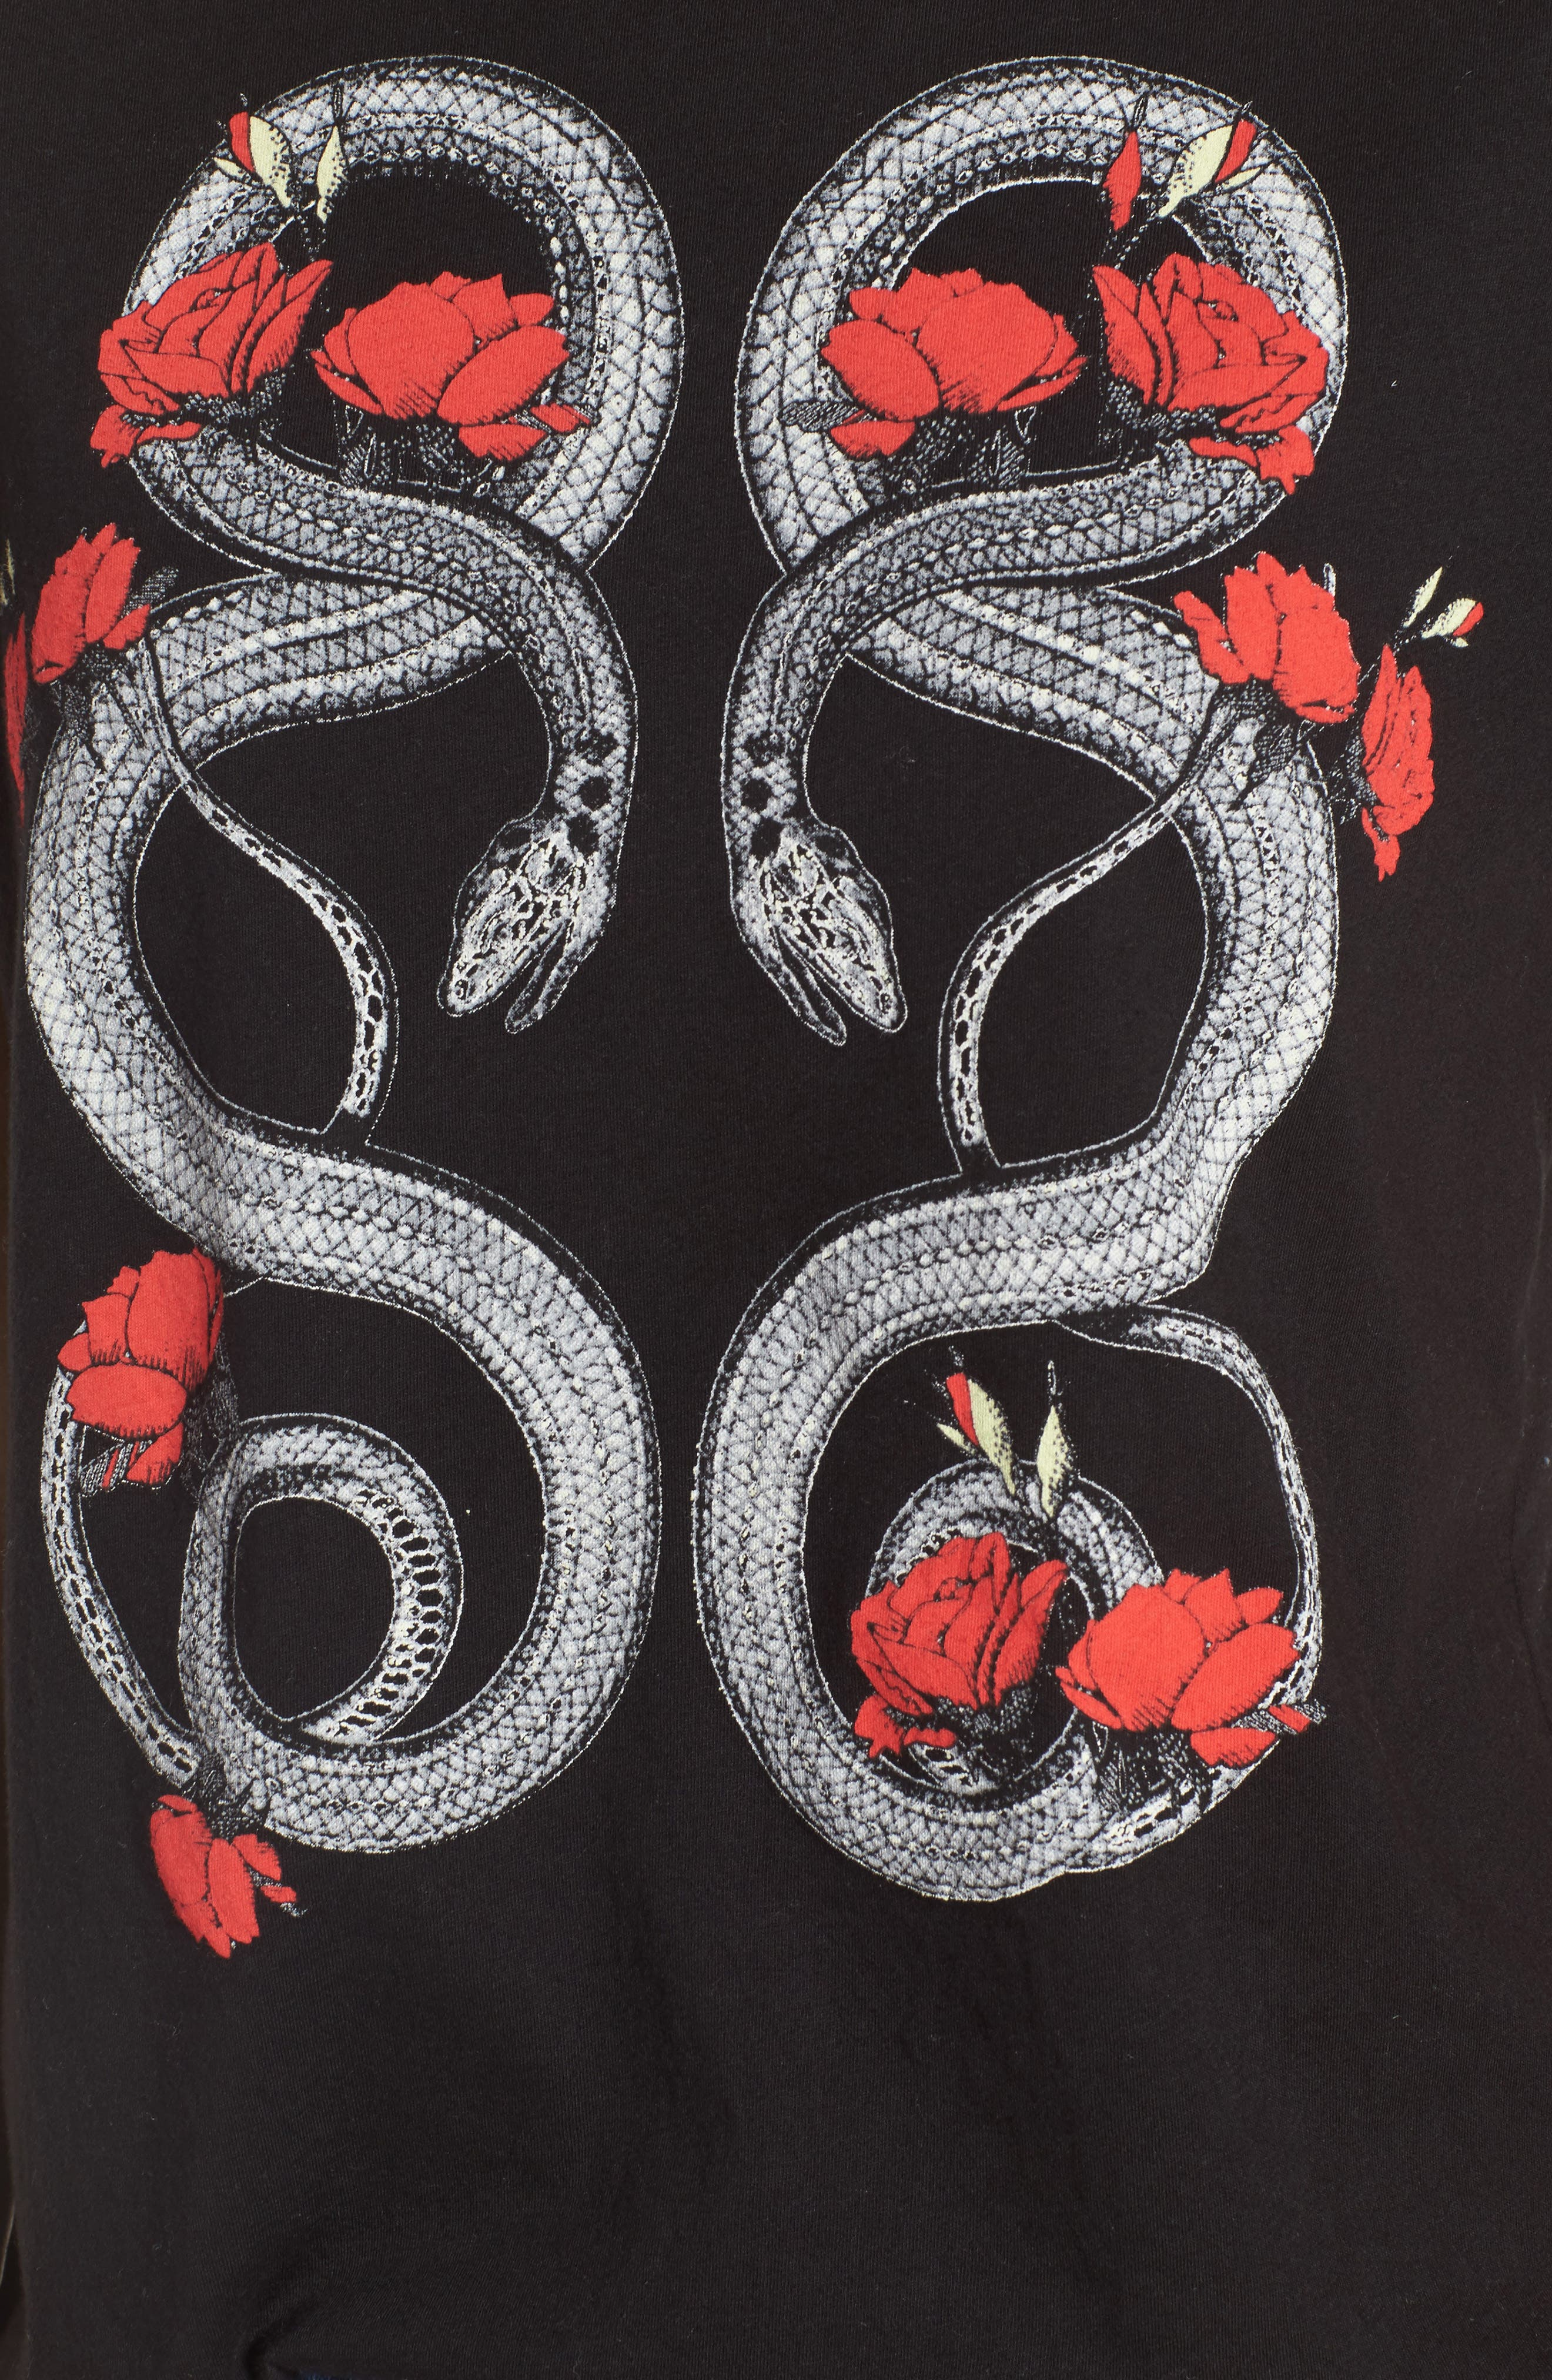 Red Snakes Tee,                             Alternate thumbnail 5, color,